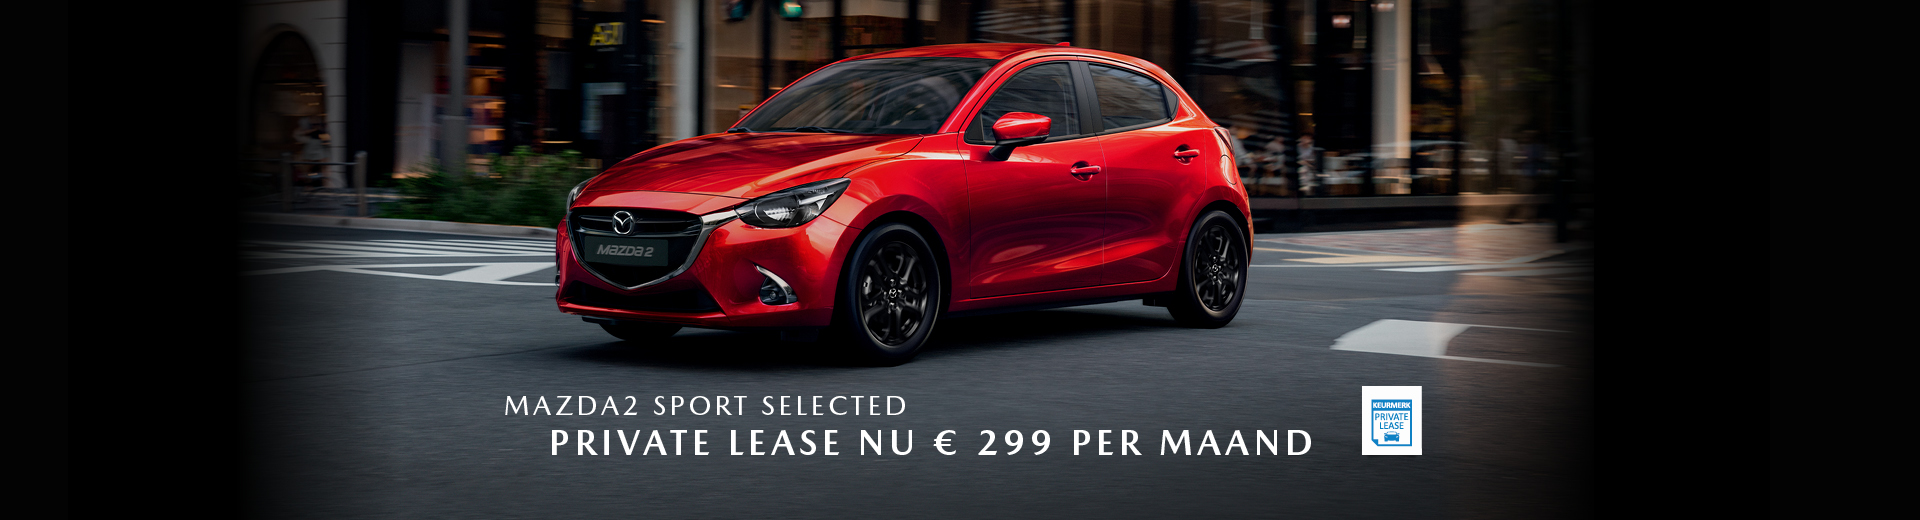 190283 Mazda Q3_Banner Mazda2 Sport Selected_Private Lease_1920x520px [opmaak 01]